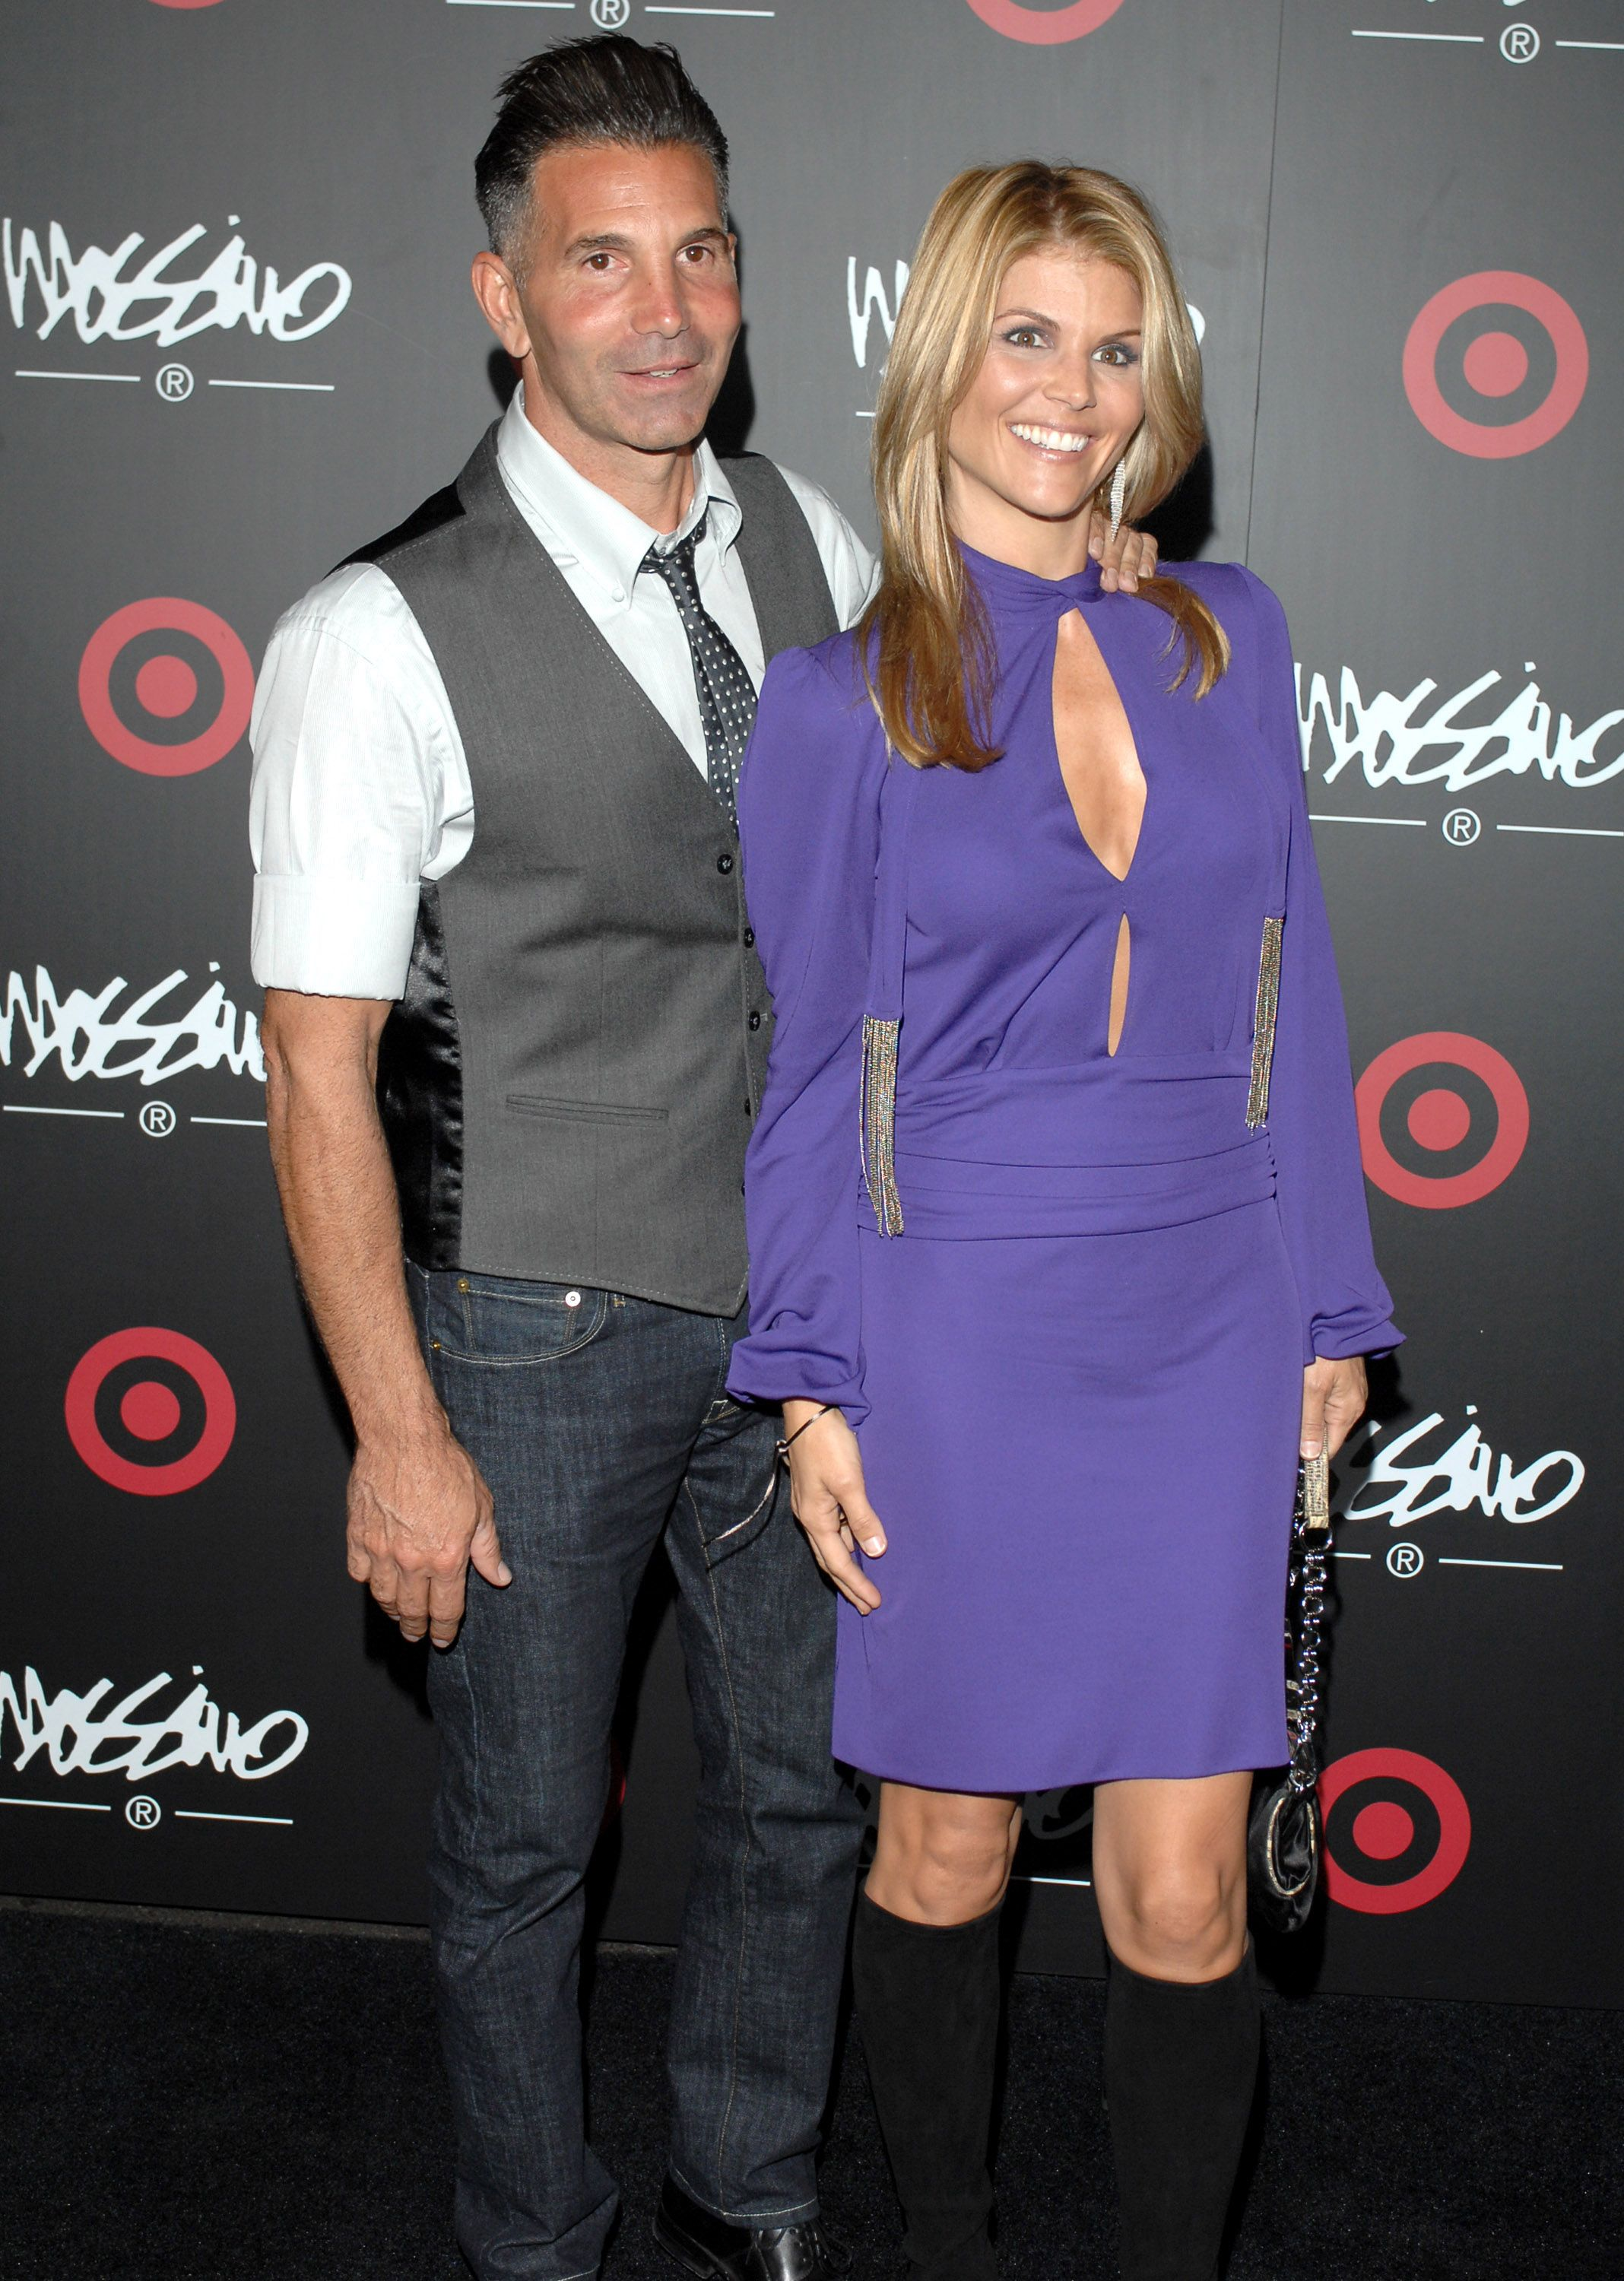 Mossimo Giannulli and Lori Loughlin at the Target Hosts LA Fashion Week Party for Giannulli | Photo: Getty Images